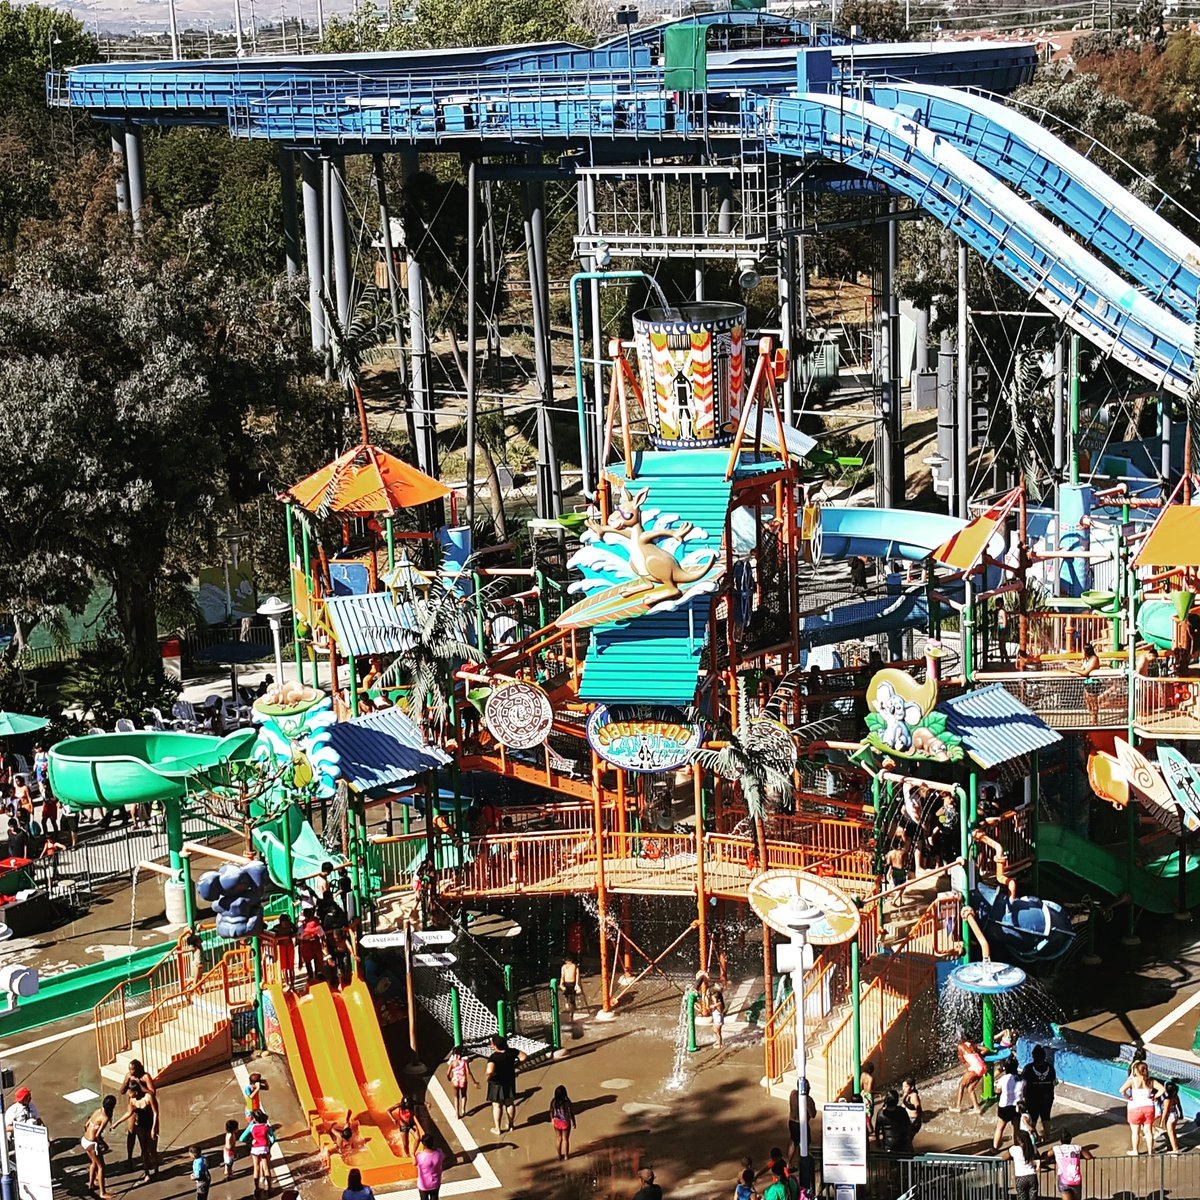 Park clipart great america Area a know waterpark Great